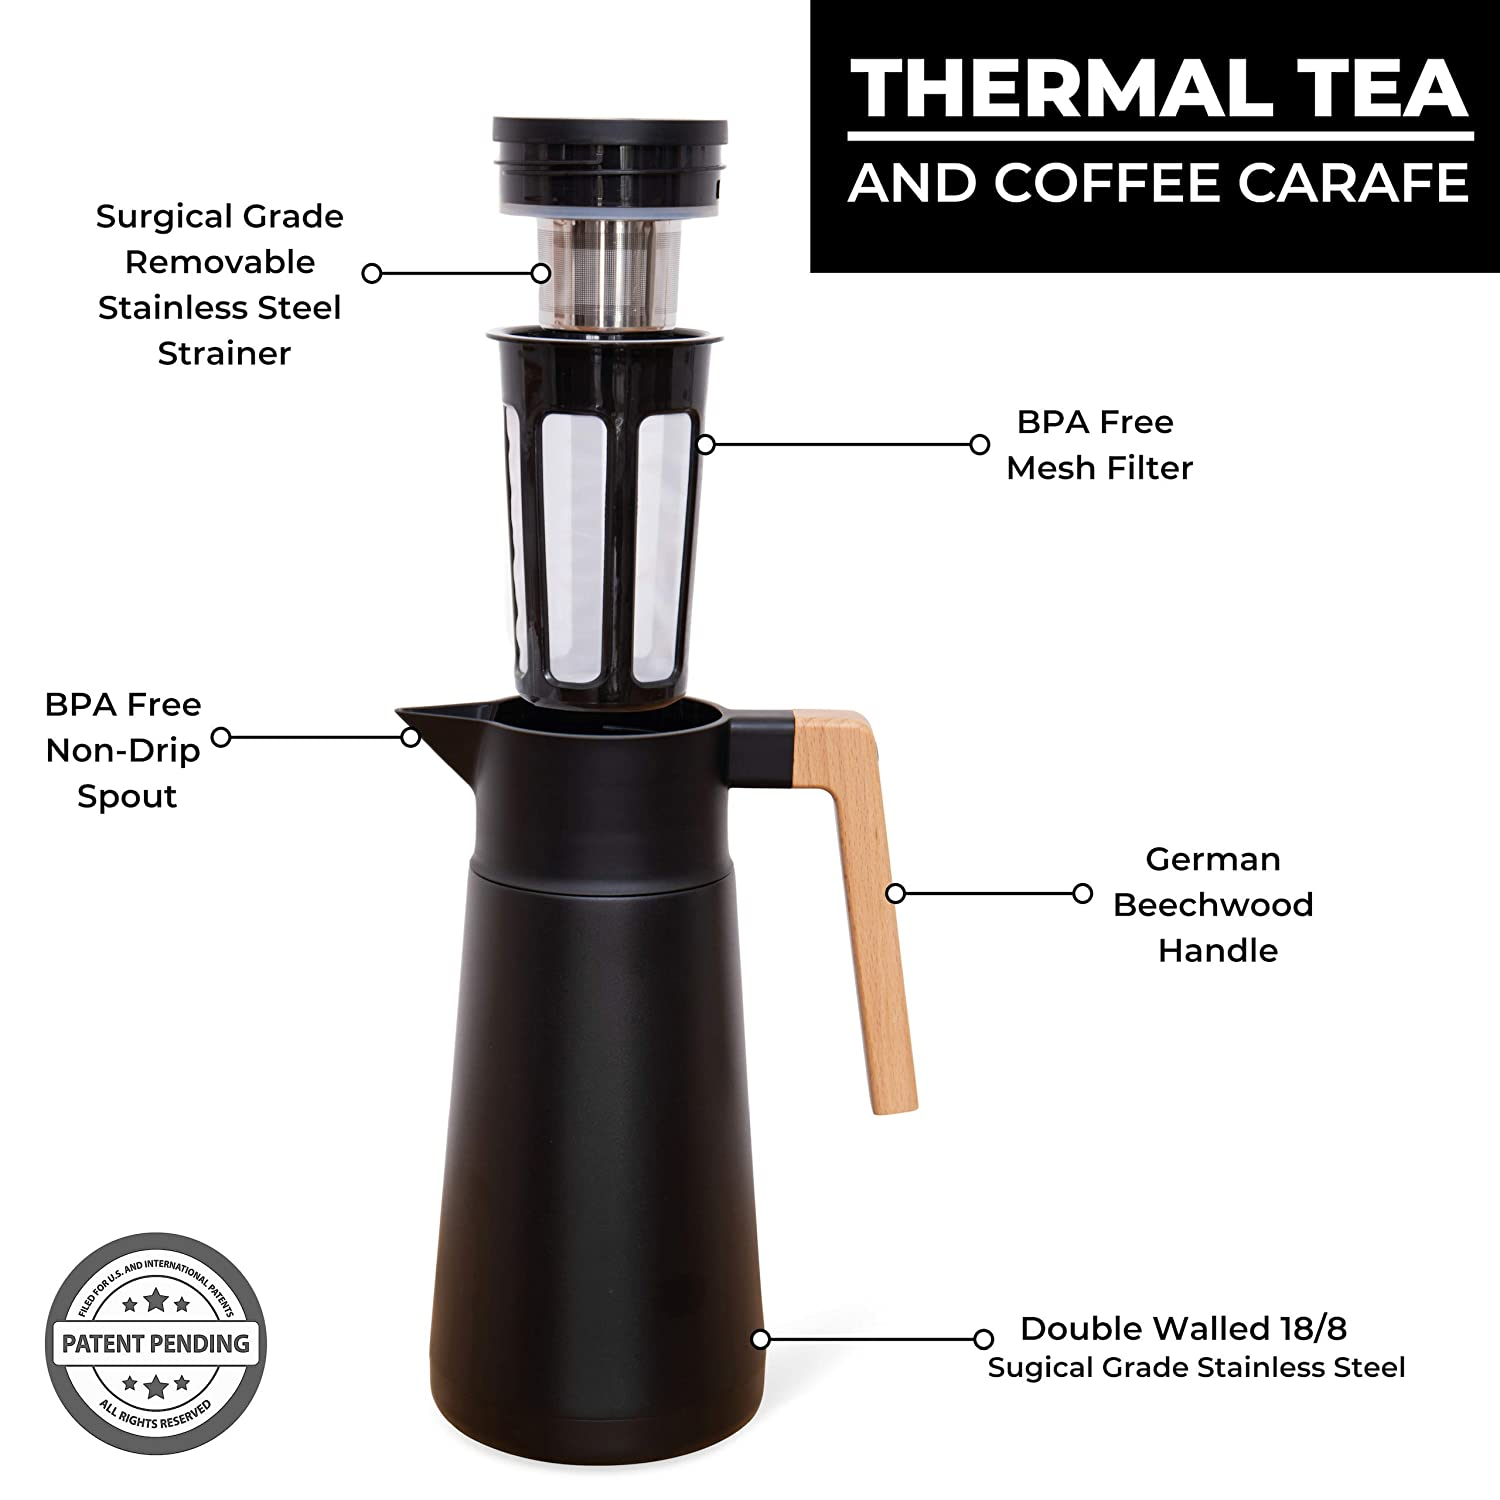 Large Thermal Coffee Carafe Vacuum Carafes With Removable Tea Infuser and Strainer Black Double Walled Thermal Pots For Coffee and Teas by Hastings Collective Stainless Steel 68 Oz.